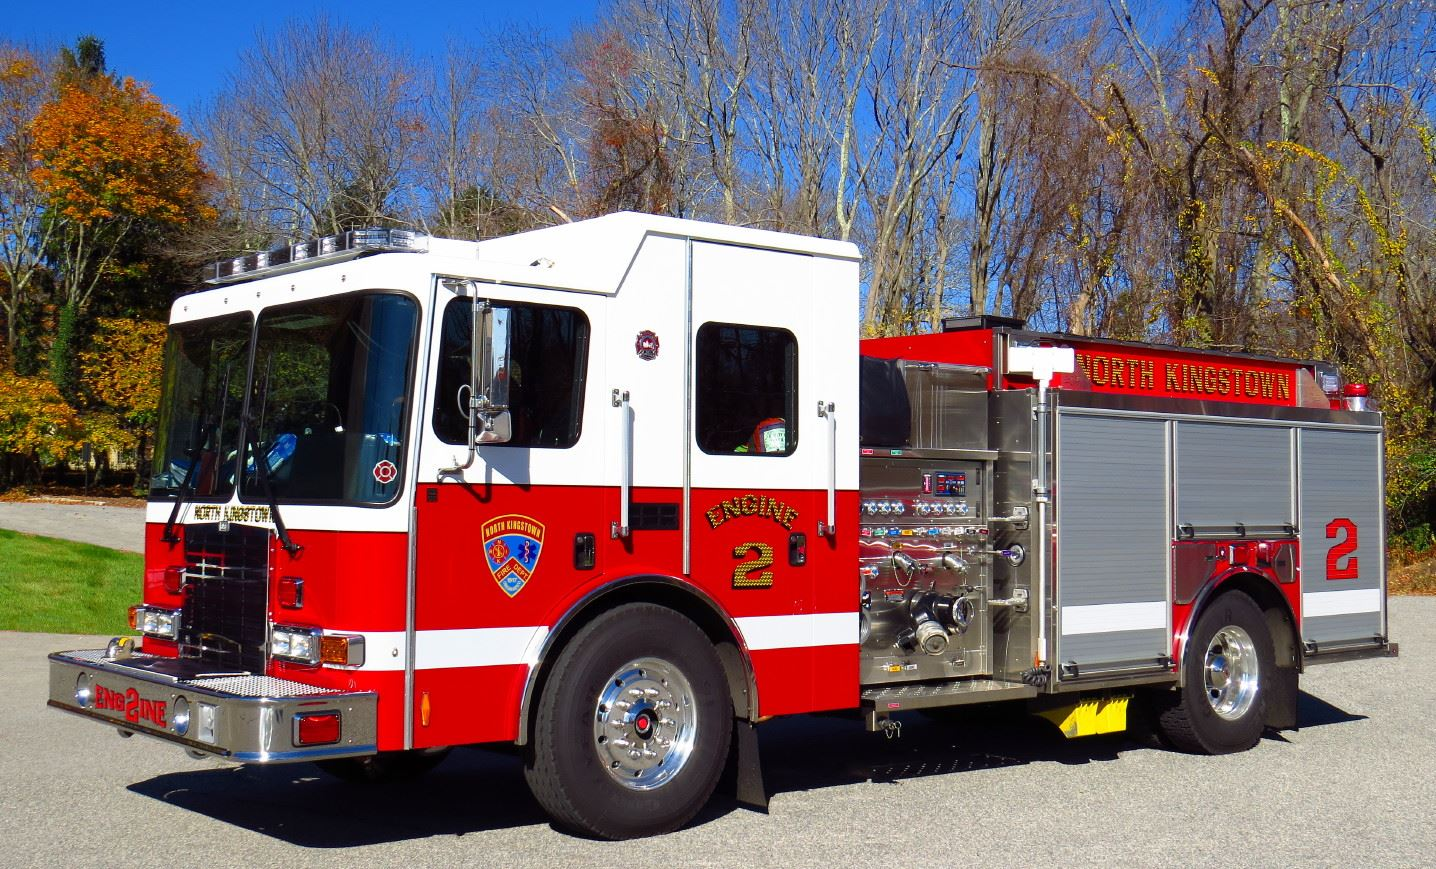 North Kingstown Engine 2